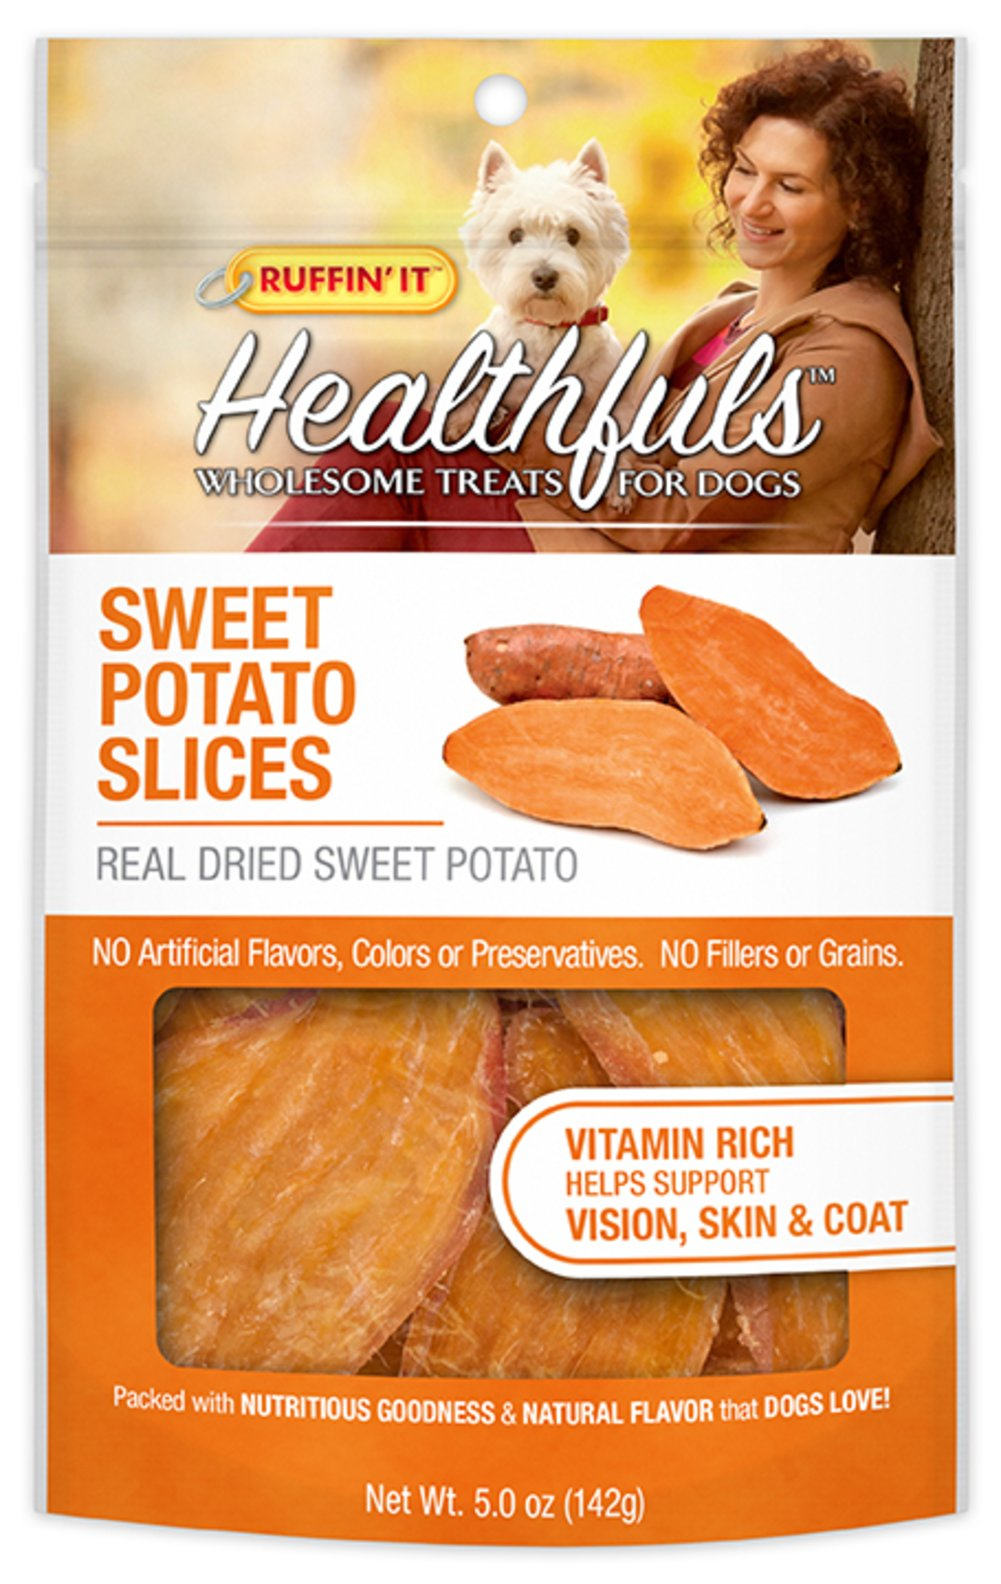 Healthfuls Wholesome Treats for Dogs Sweet Potato Slices <p><strong>From the Manufacturer's Label:</strong></p><p>Ruffin' It™ Healthfuls Sweet Potato Slices are packed with nutritious goodness and a natural sweet flavor that dogs love.  100% natural dried sweet potato slices. No artificial preservatives, no fillers, no grains and  no artificial flavors or colors.</p> 5 oz Bag  $4.99